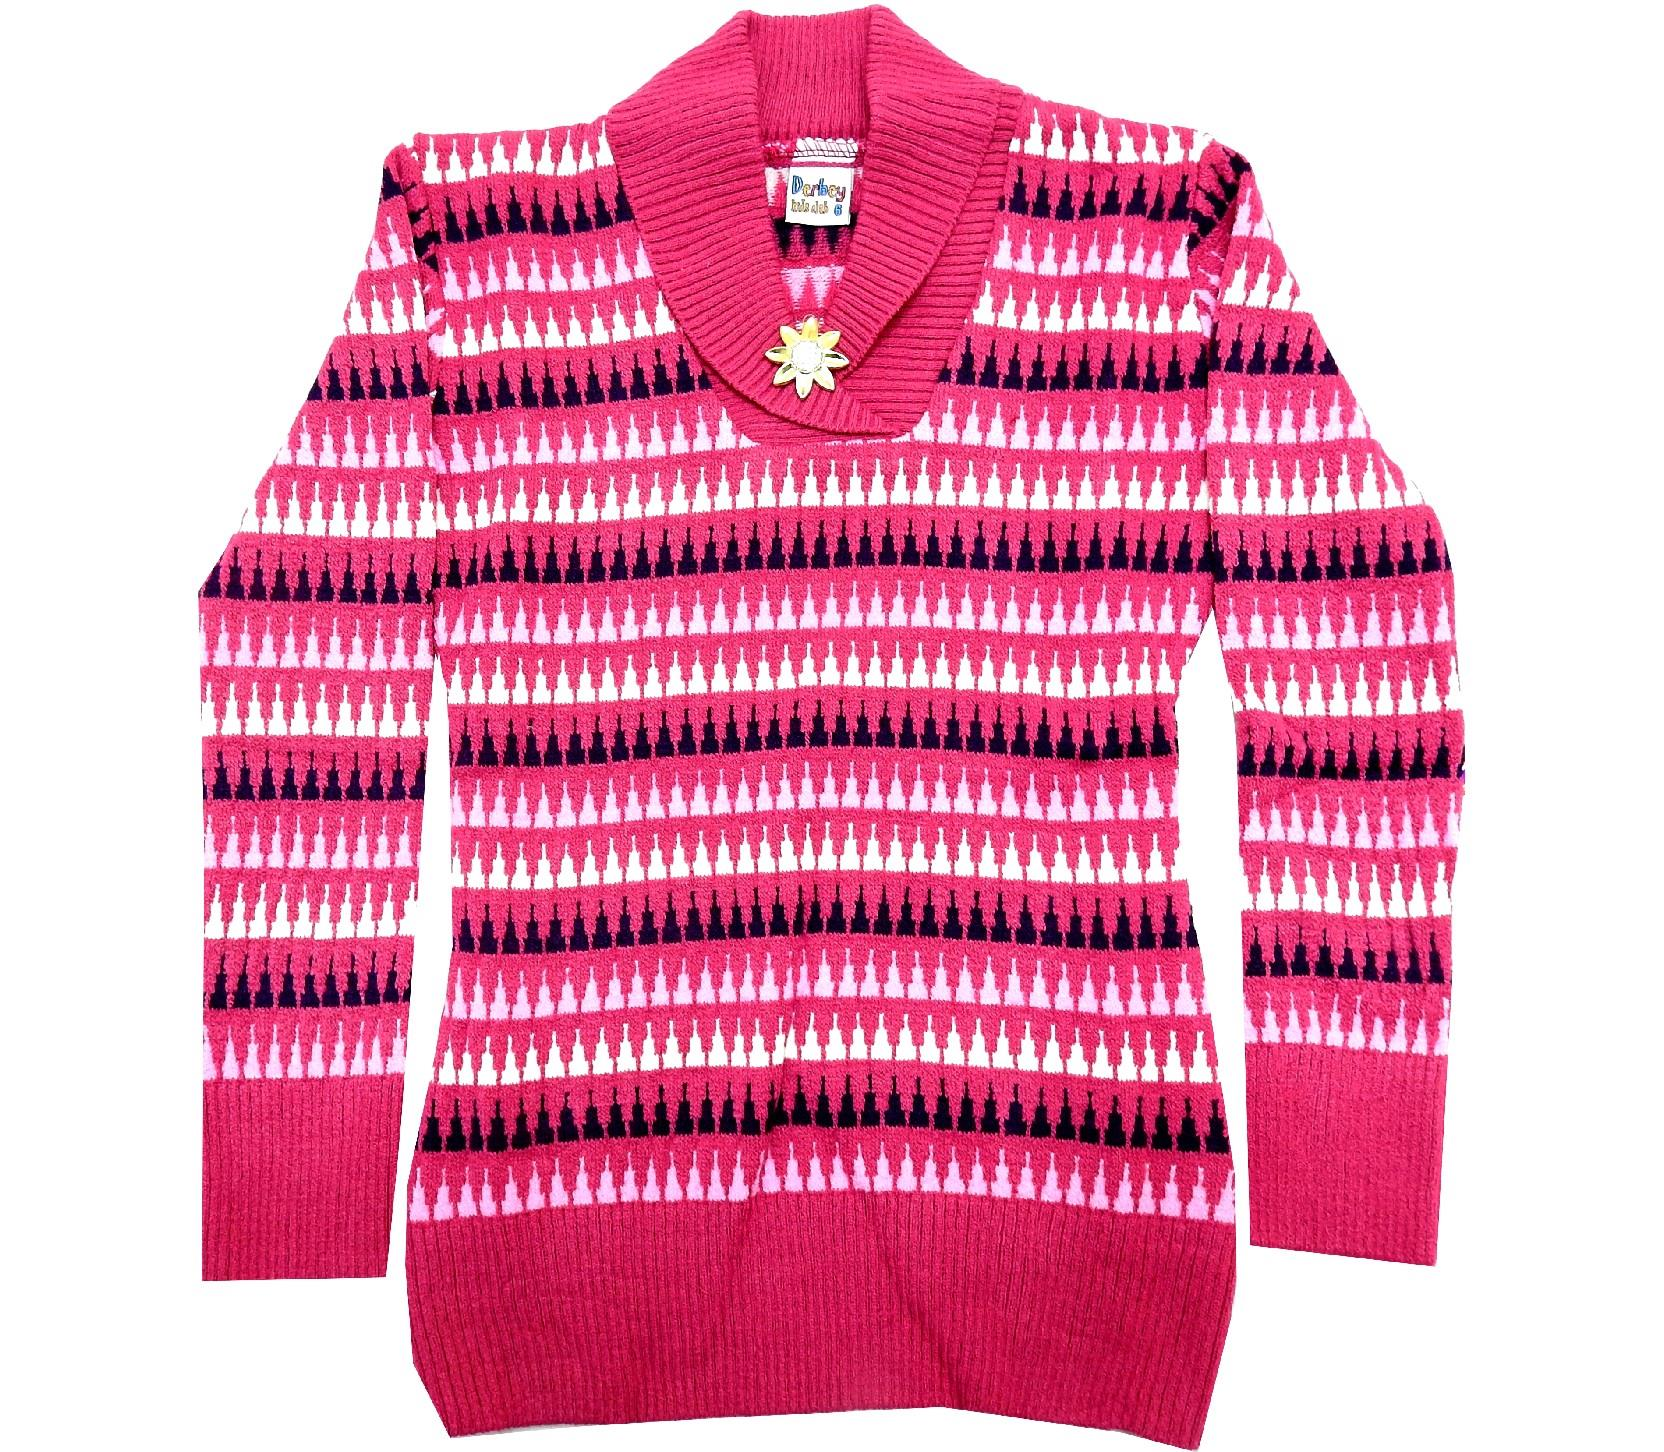 WHOLESALE STRIPED SWEATER TUNIC FOR GIRL (10-12 AGE)